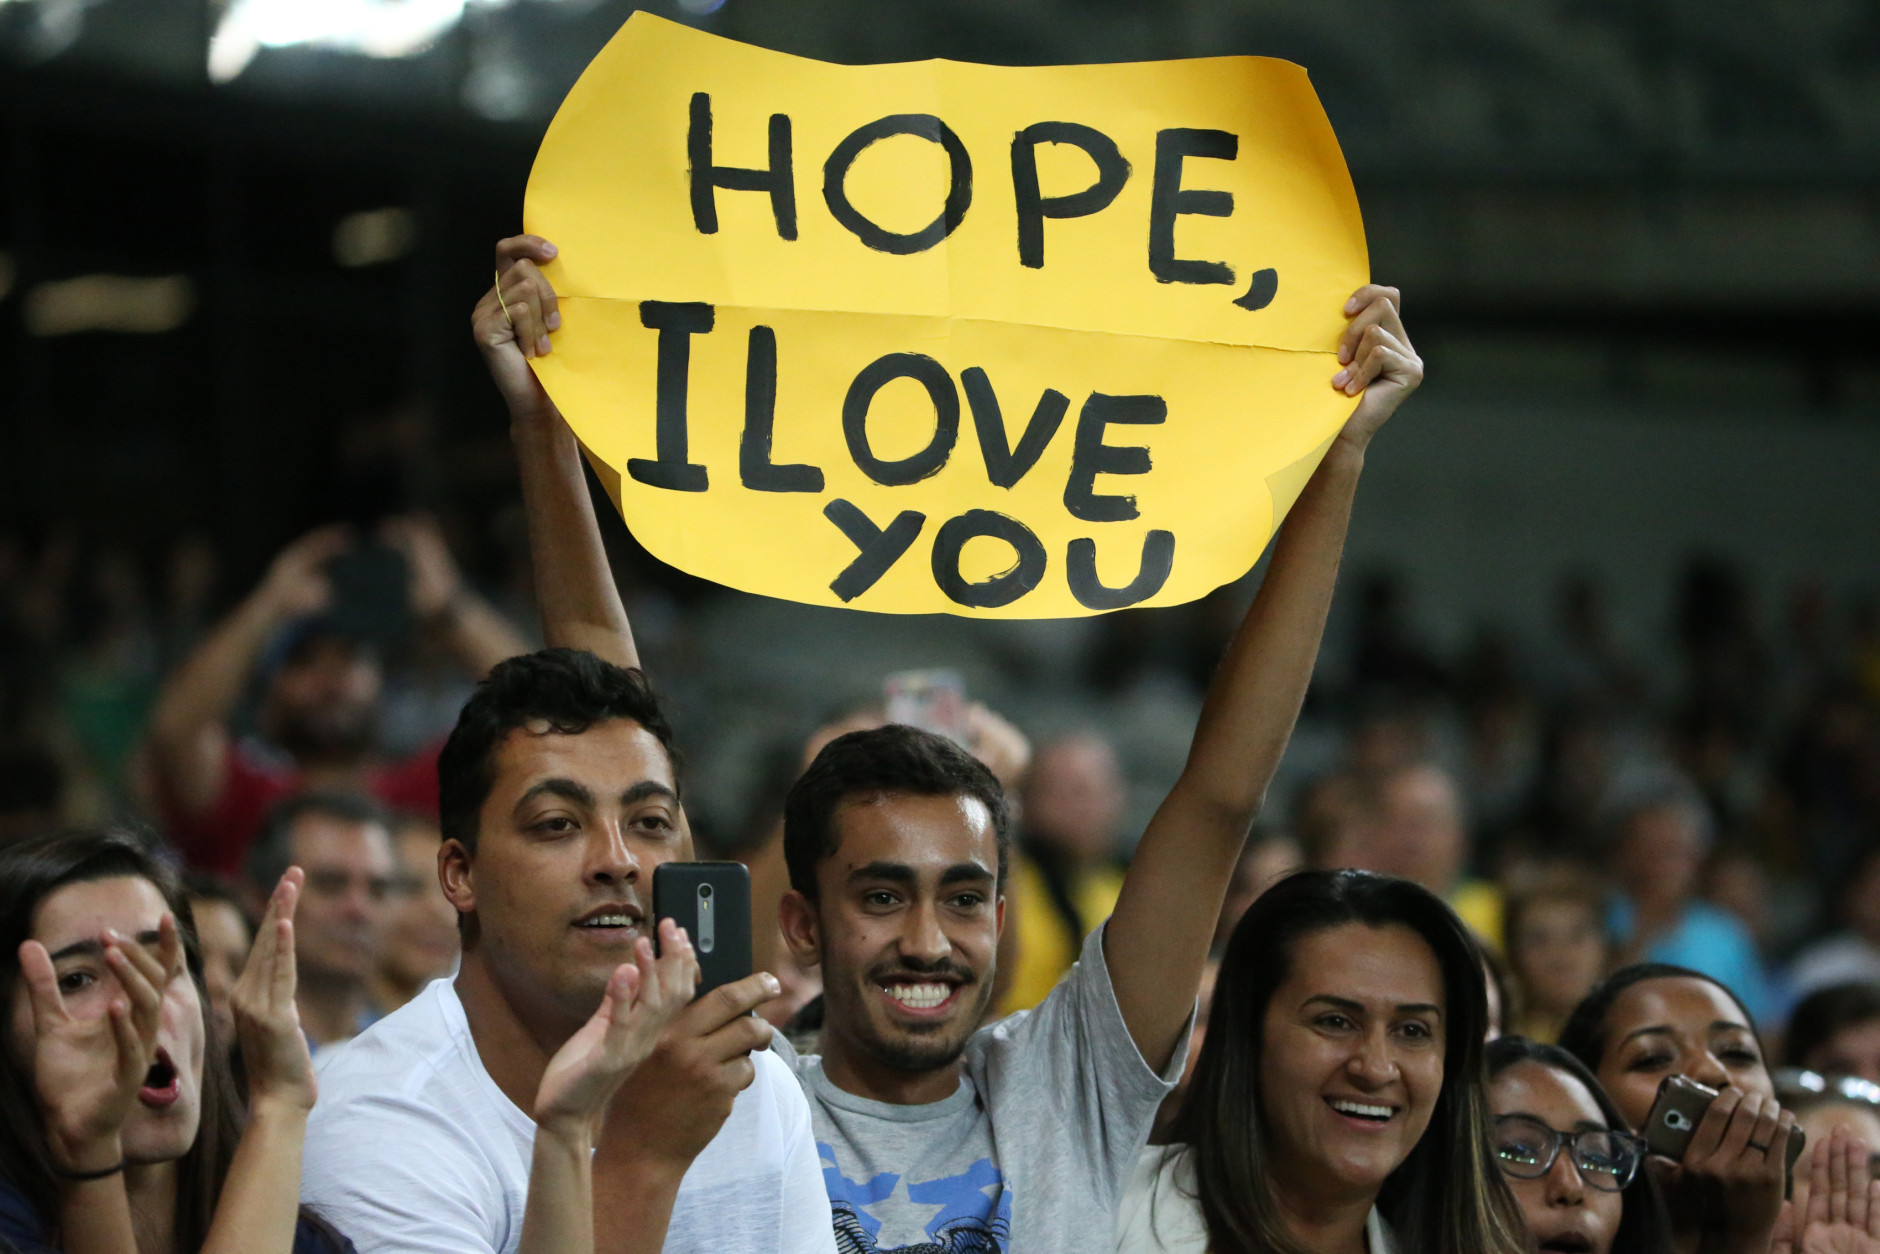 """A fan of United States' goalkeeper Hope Solo, holds a sign that reads """"Hope, I Love You"""" during a group G match of the women's Olympic football tournament between United States and France at the Mineirao stadium in Belo Horizonte, Brazil, Saturday, Aug. 6, 2016. United States won 1-0. (AP Photo/Eugenio Savio)"""